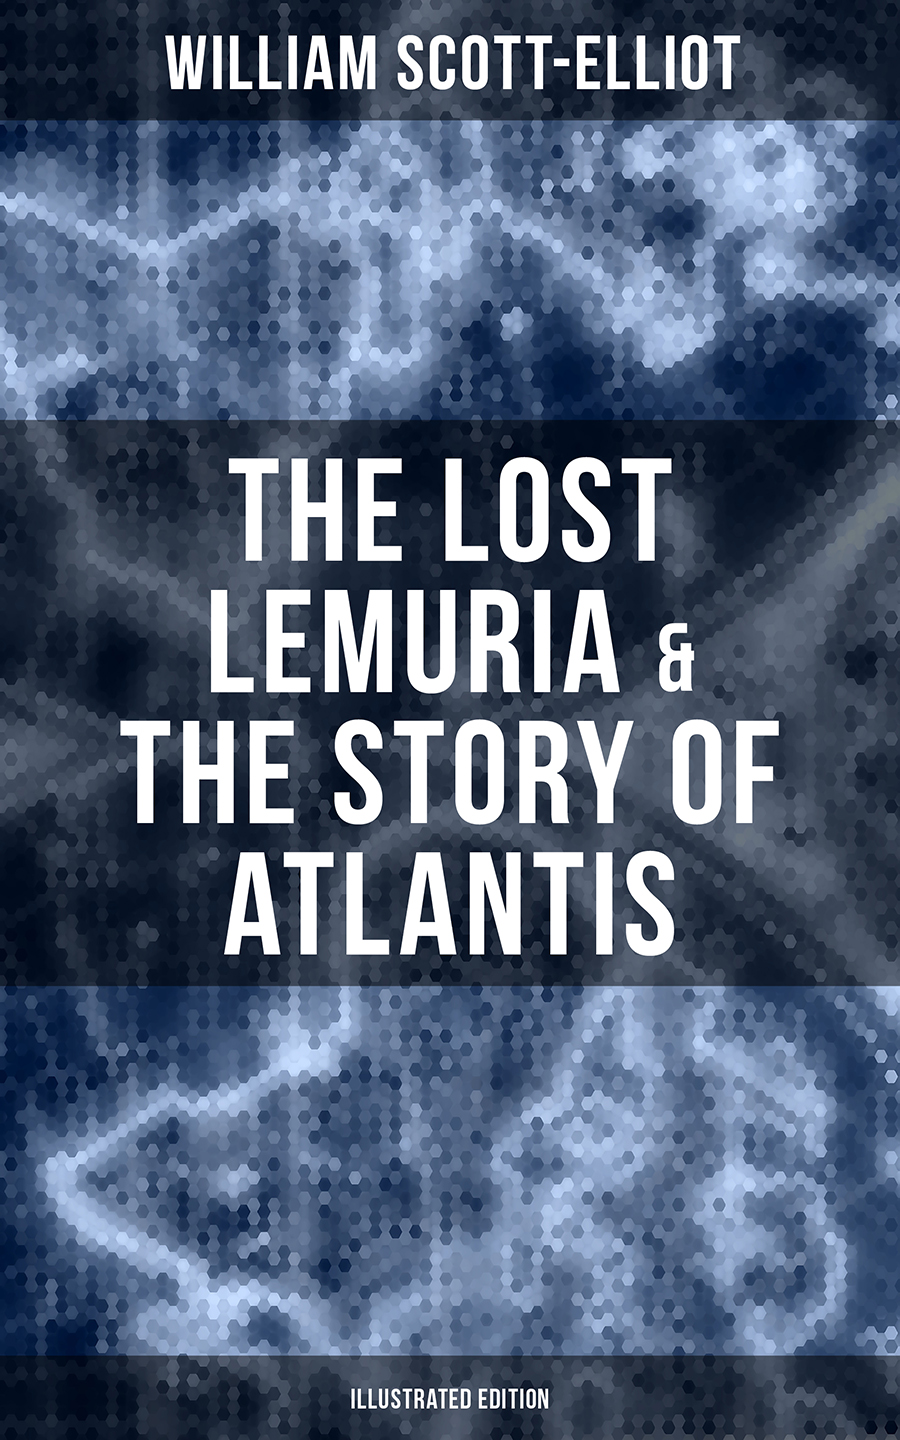 William Scott-Elliot The Lost Lemuria & The Story of Atlantis (Illustrated Edition) musicals the definitive illustrated story